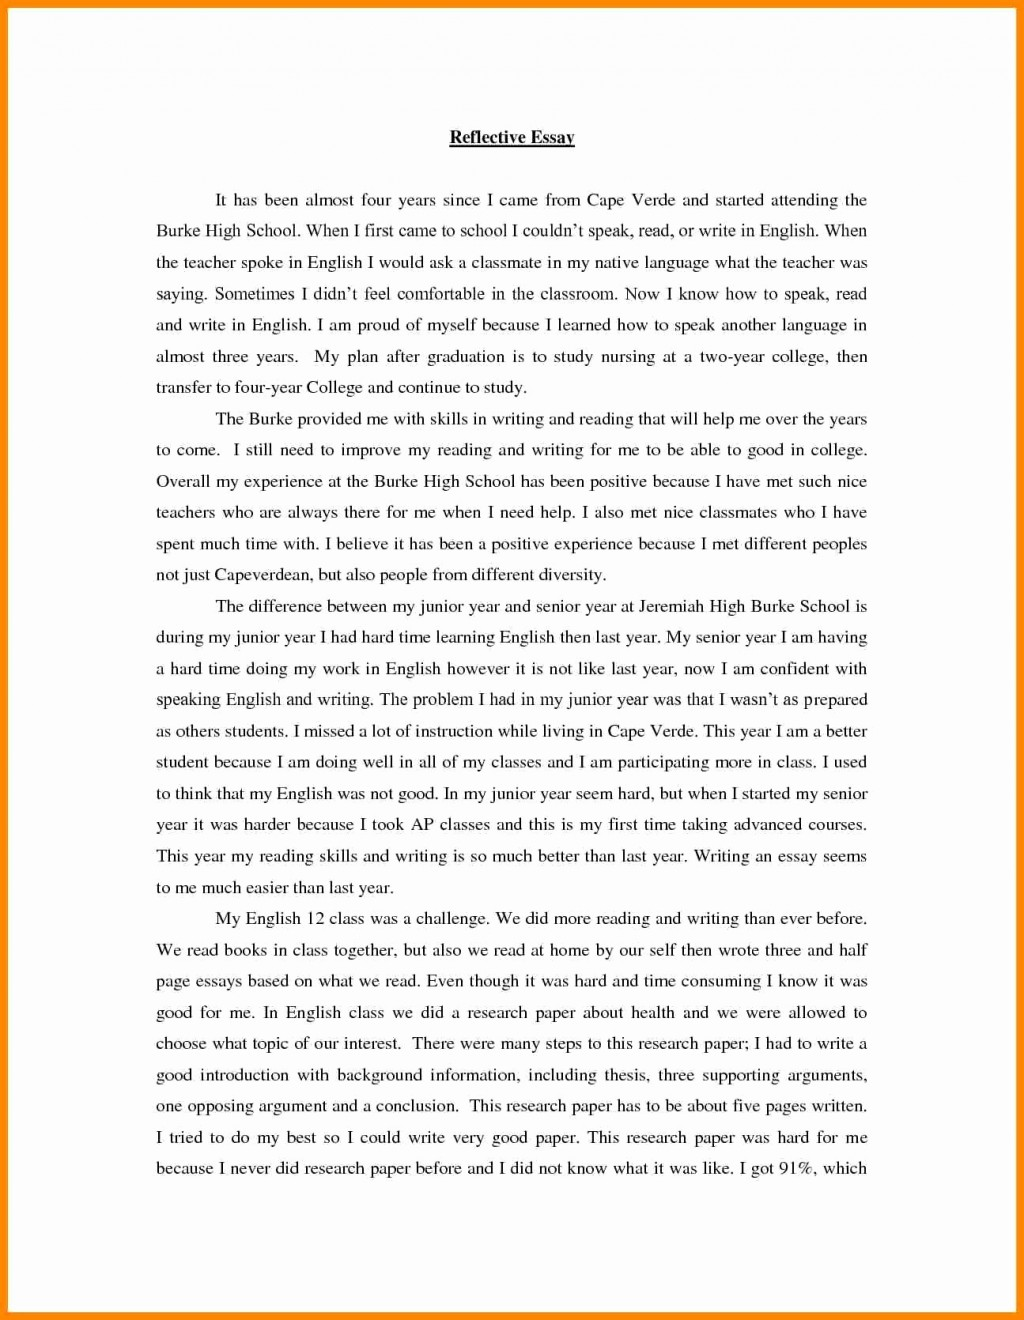 015 What Is Proposal Argument Essay Sample Term Paper Academic Service Argumentative Examples For High School Luxury Fresh Catcher In The Free Pdf Example Onrtion College Excellent A Large